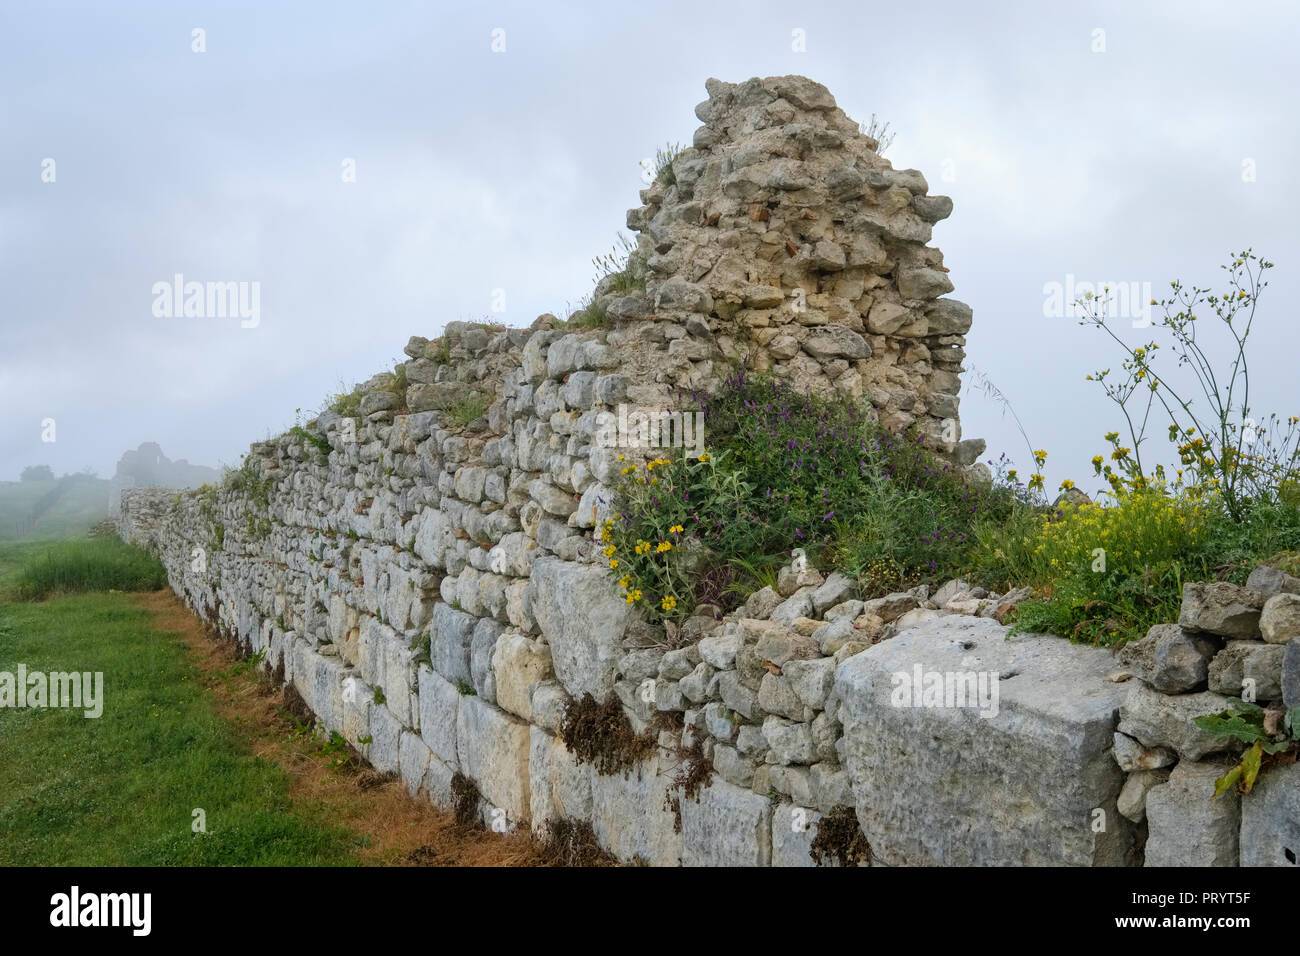 Albania, Fier County, ancient city Byllis, city wall - Stock Image